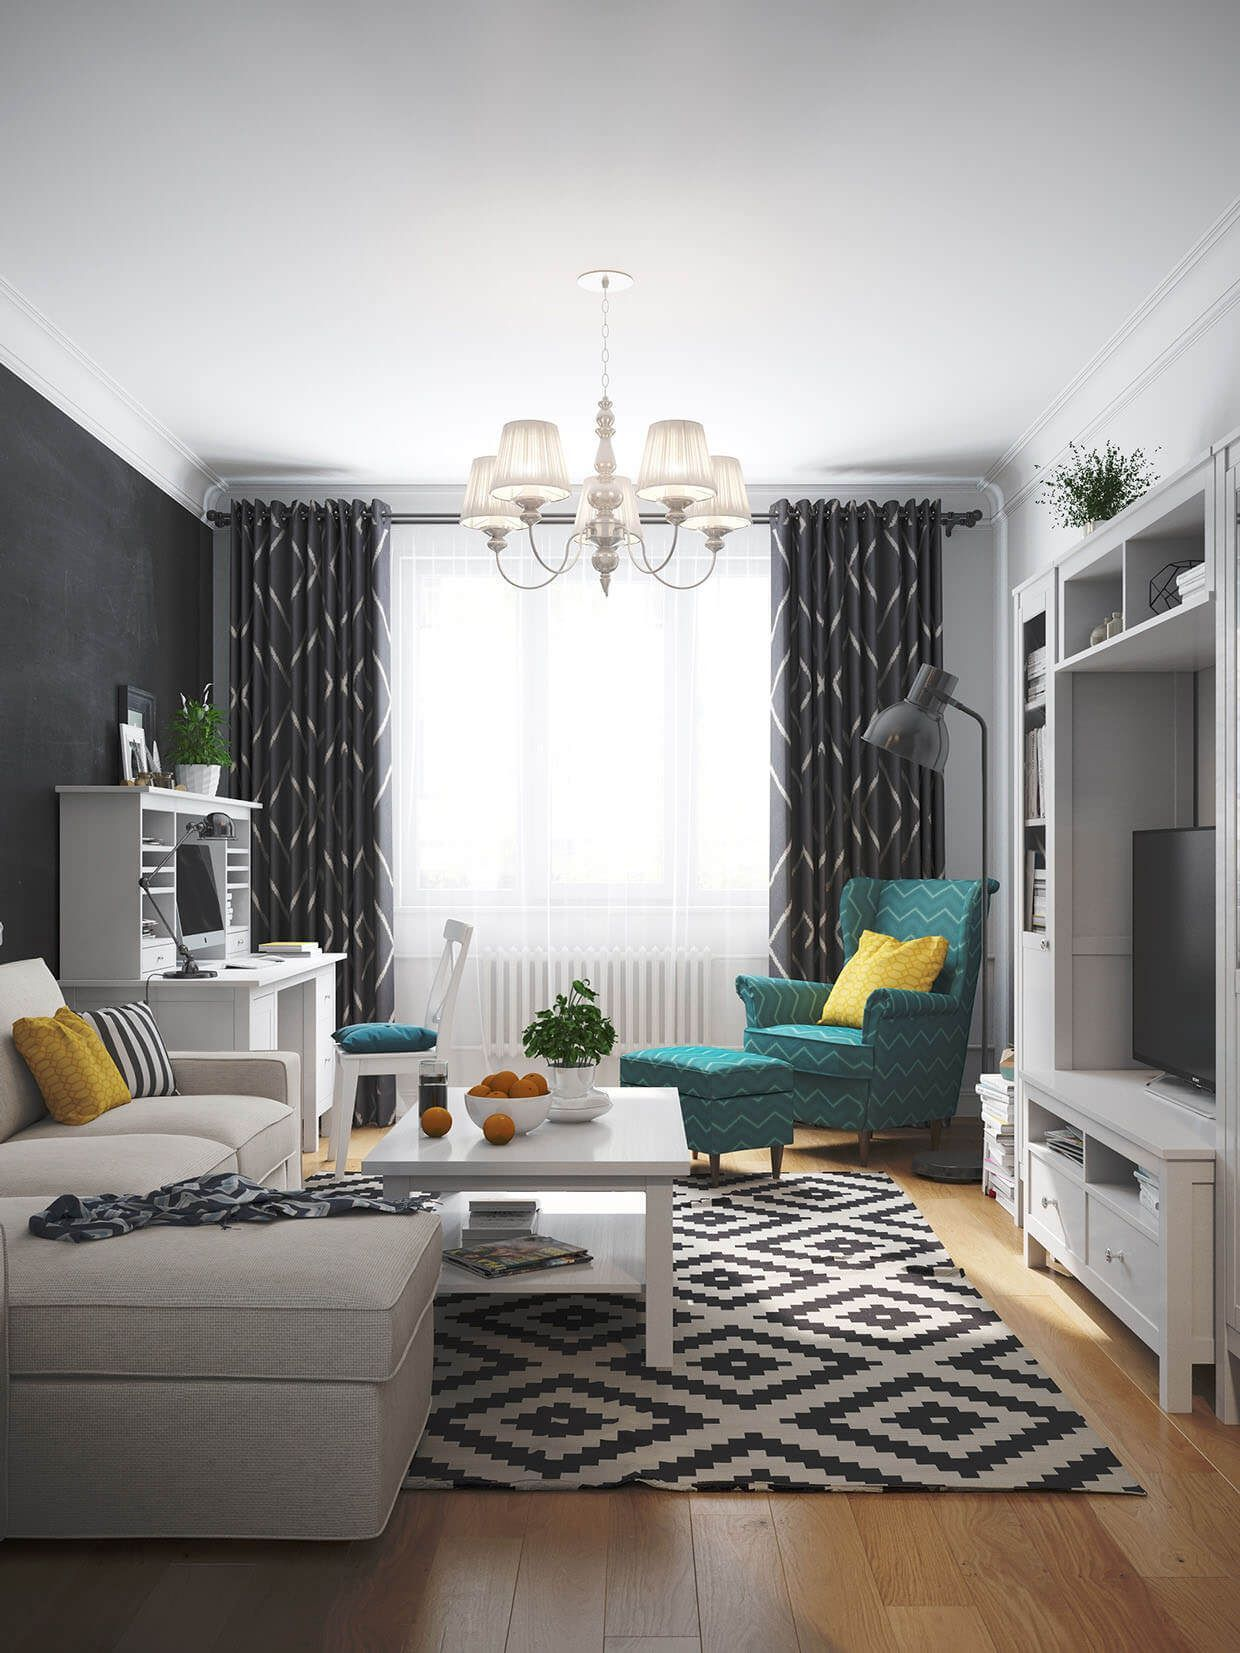 Best Design Living Room: 8 Small Living Room Ideas That Will Maximize Your Space